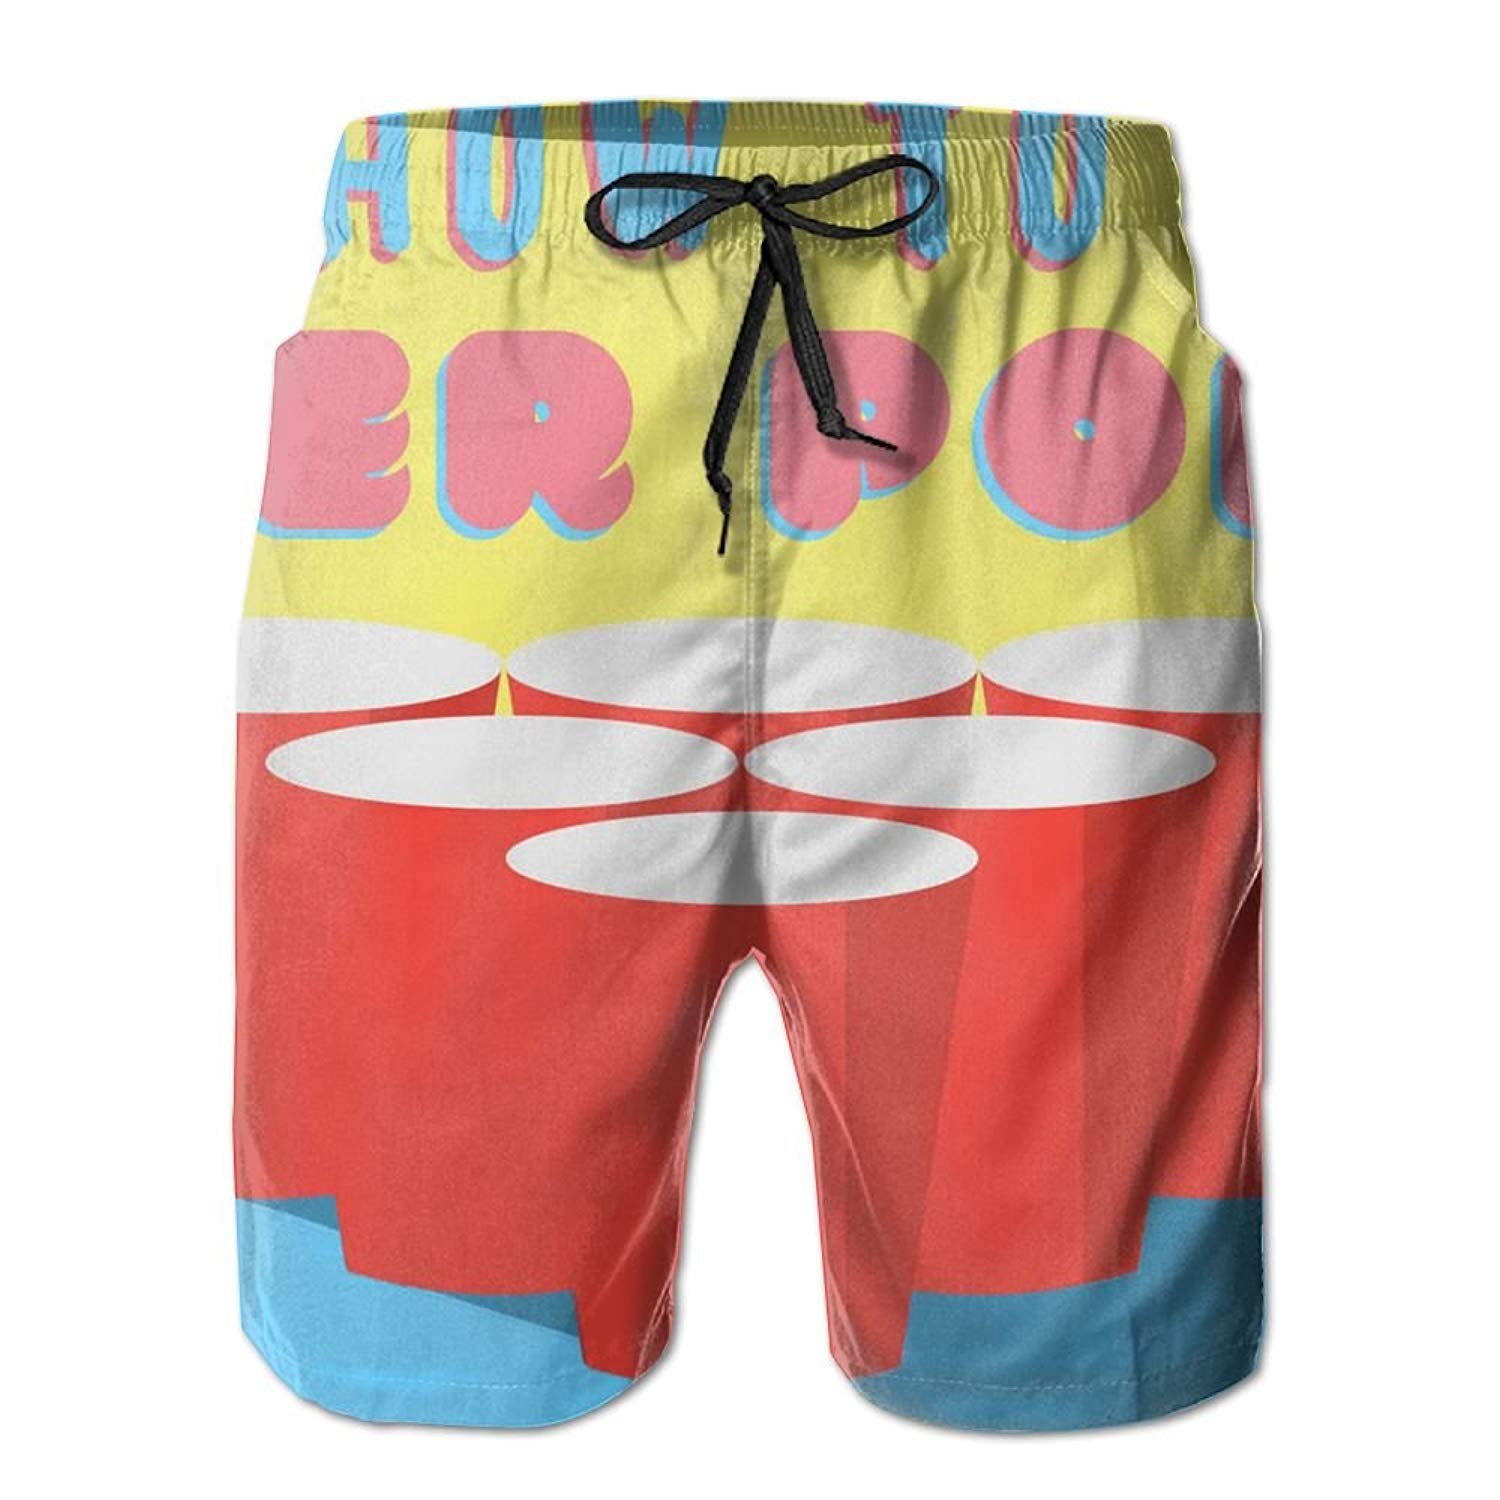 65a1cccff9999 Get Quotations · Cjhxqt Beer Pong Mens Boardshorts Swim Trunks Quick Dry  Gym Shorts Mens Swim Trunks